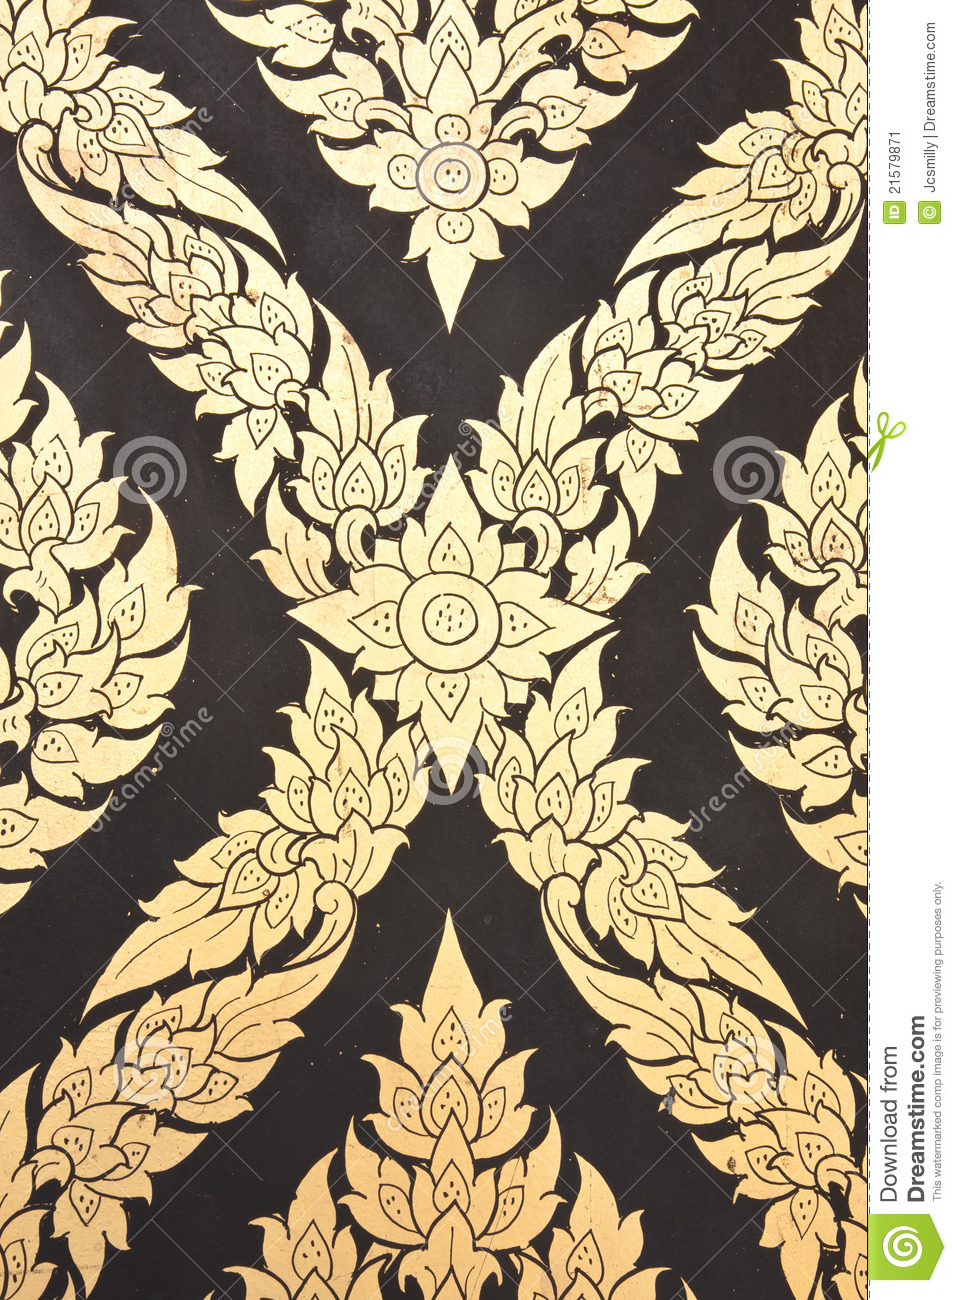 Flower pattern in traditional